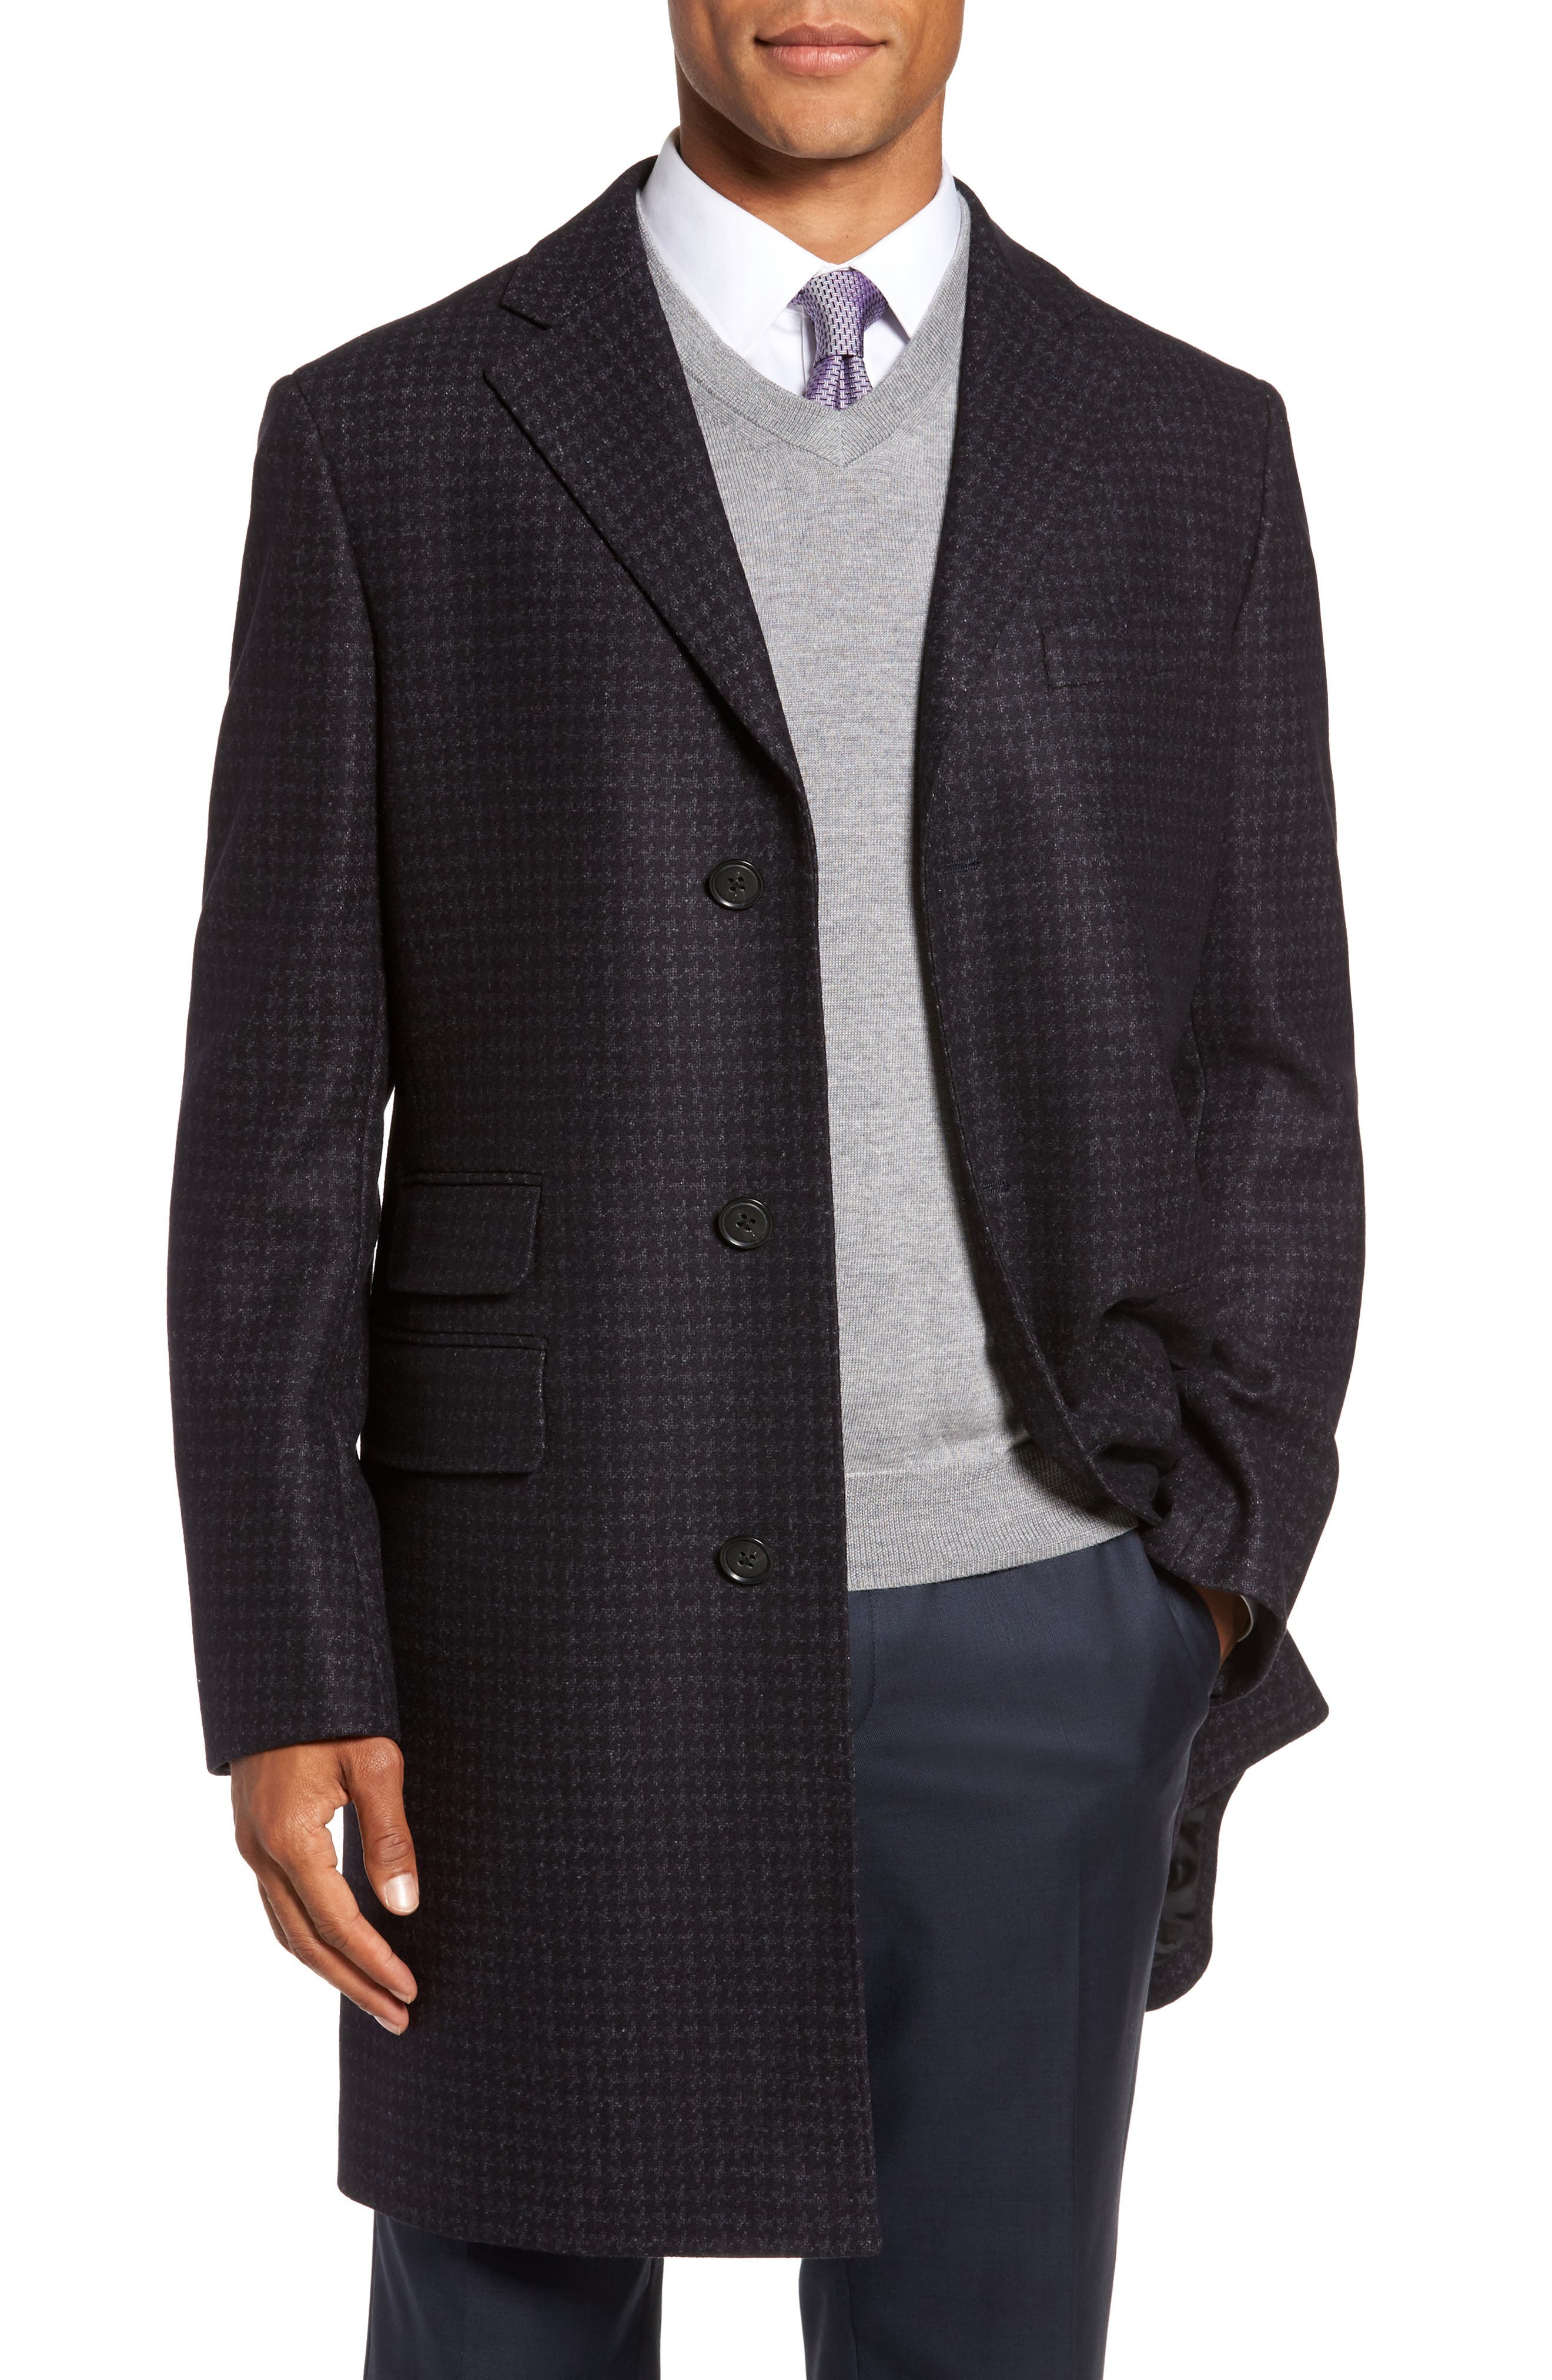 Jackson Houndstooth Wool Blend Overcoat,                         Main,                         color, Navy